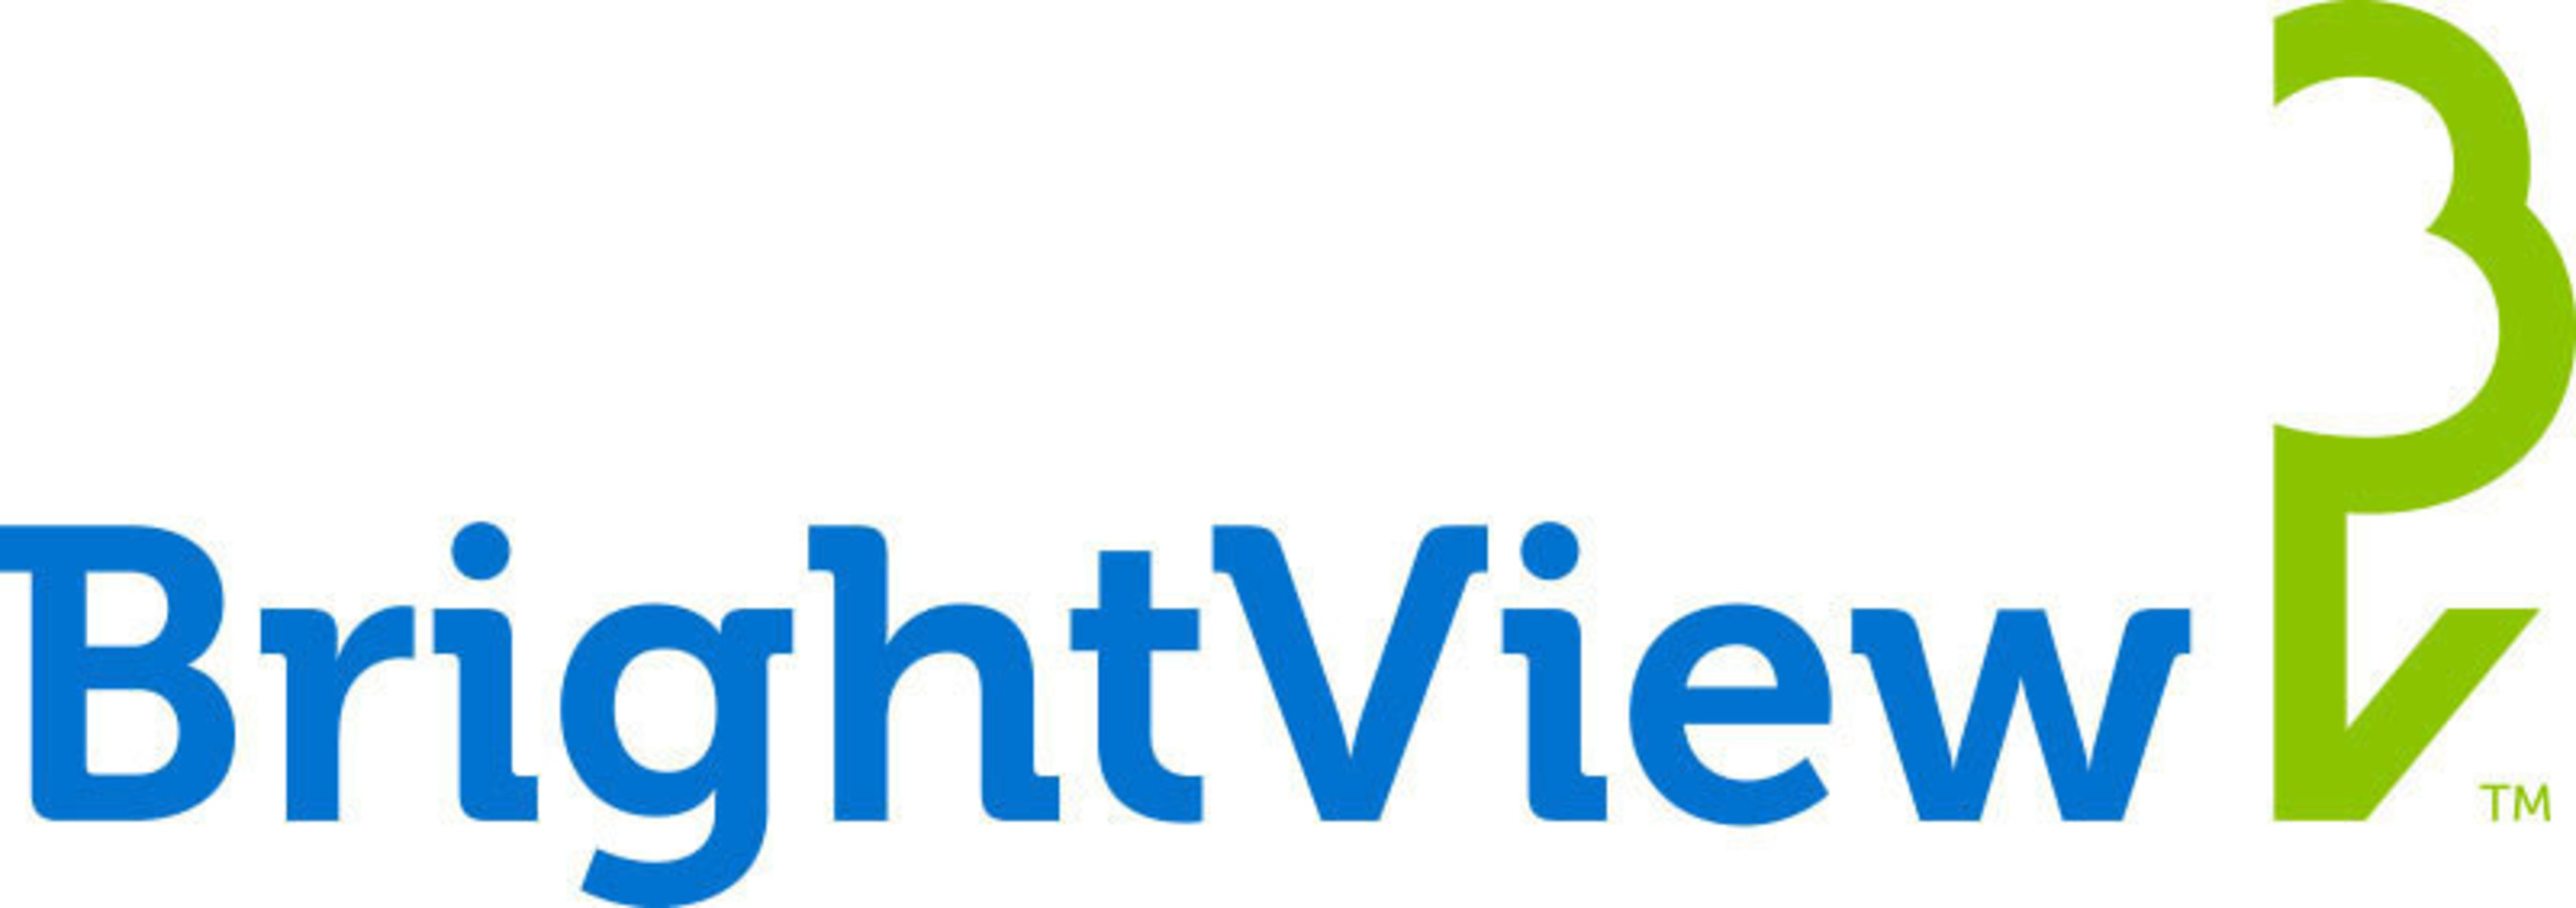 BrightView Emerged As The New Brand And Logo For Brickman And ValleyCrest  Companies